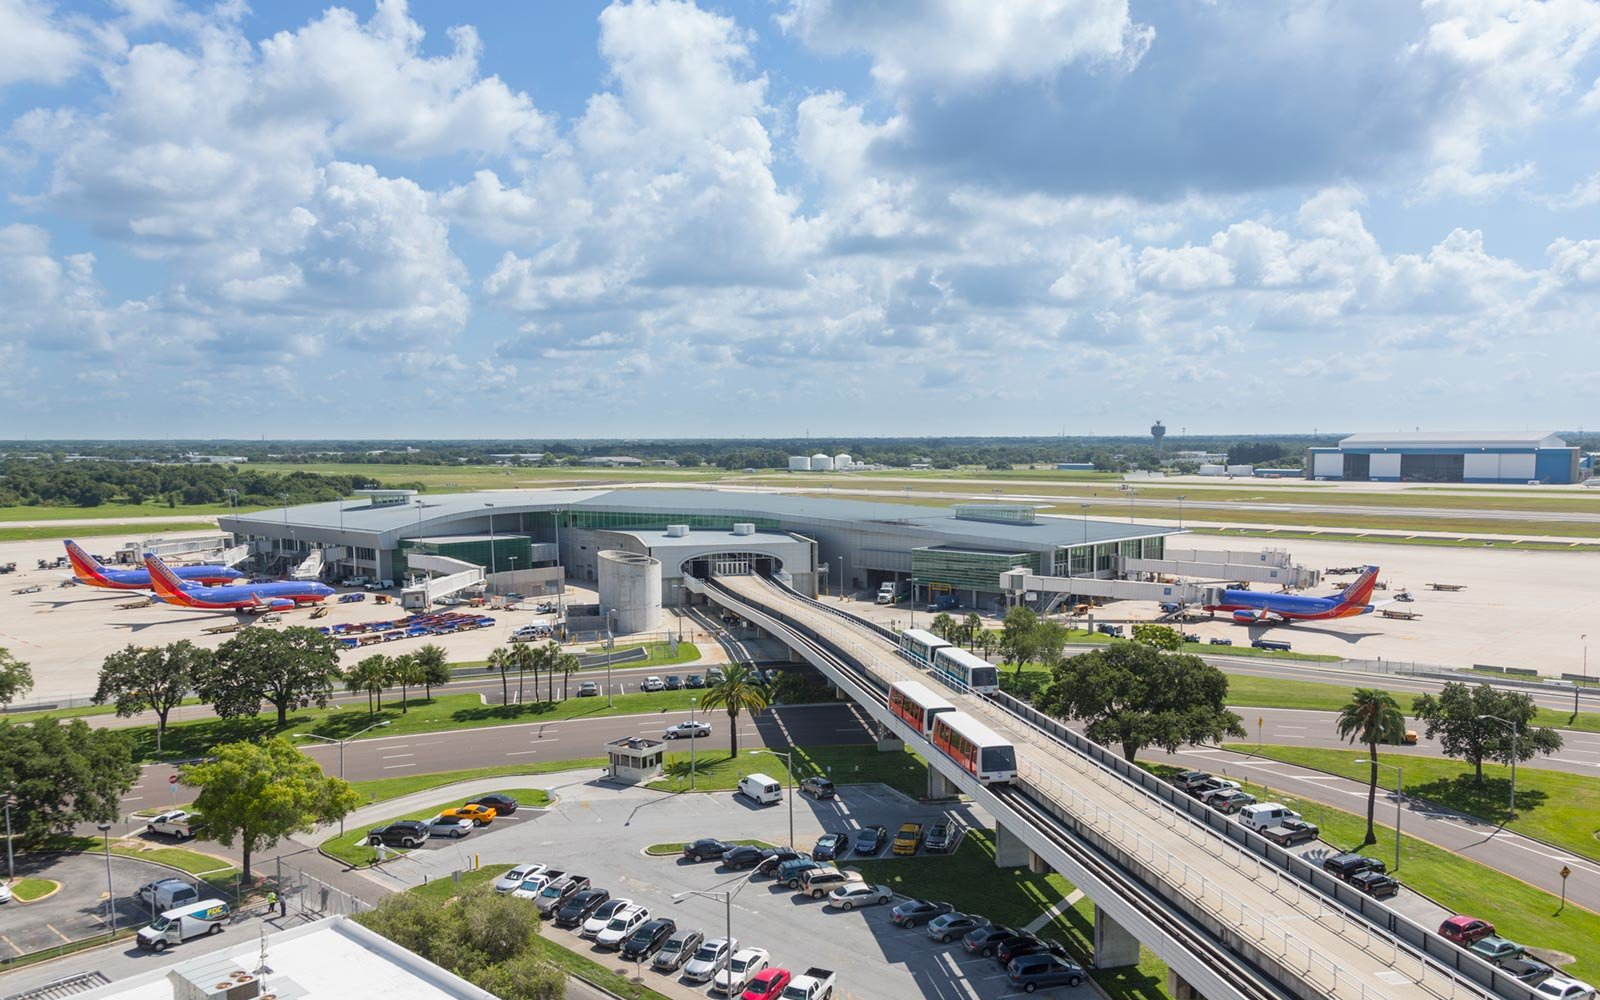 Tampa International Airport, Florida